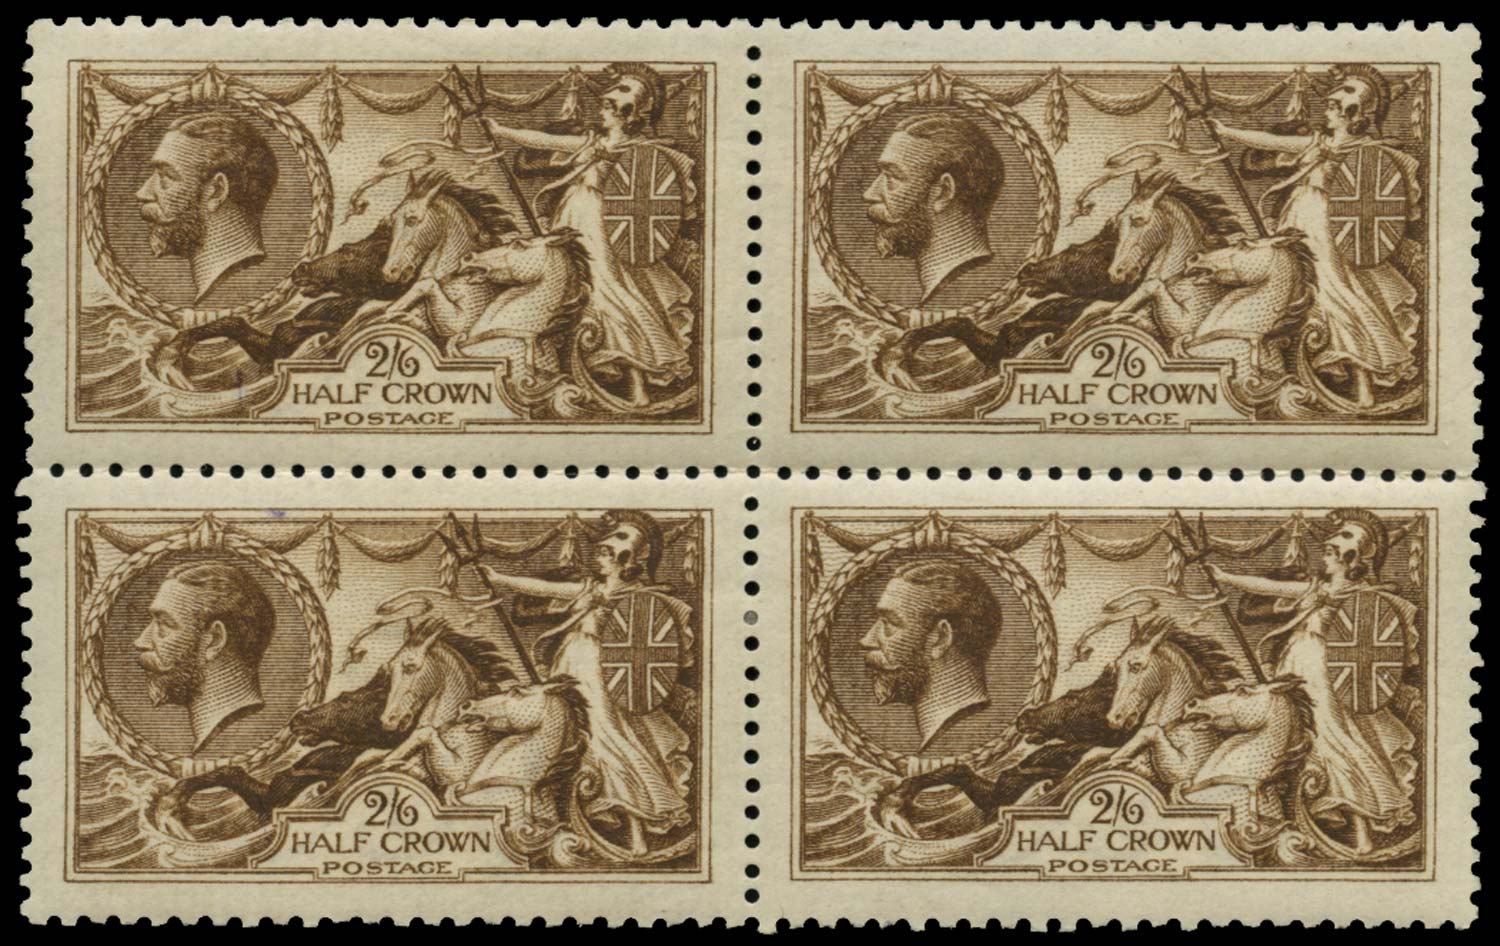 GB 1915  SG405 Mint Deep yellow brown block of four